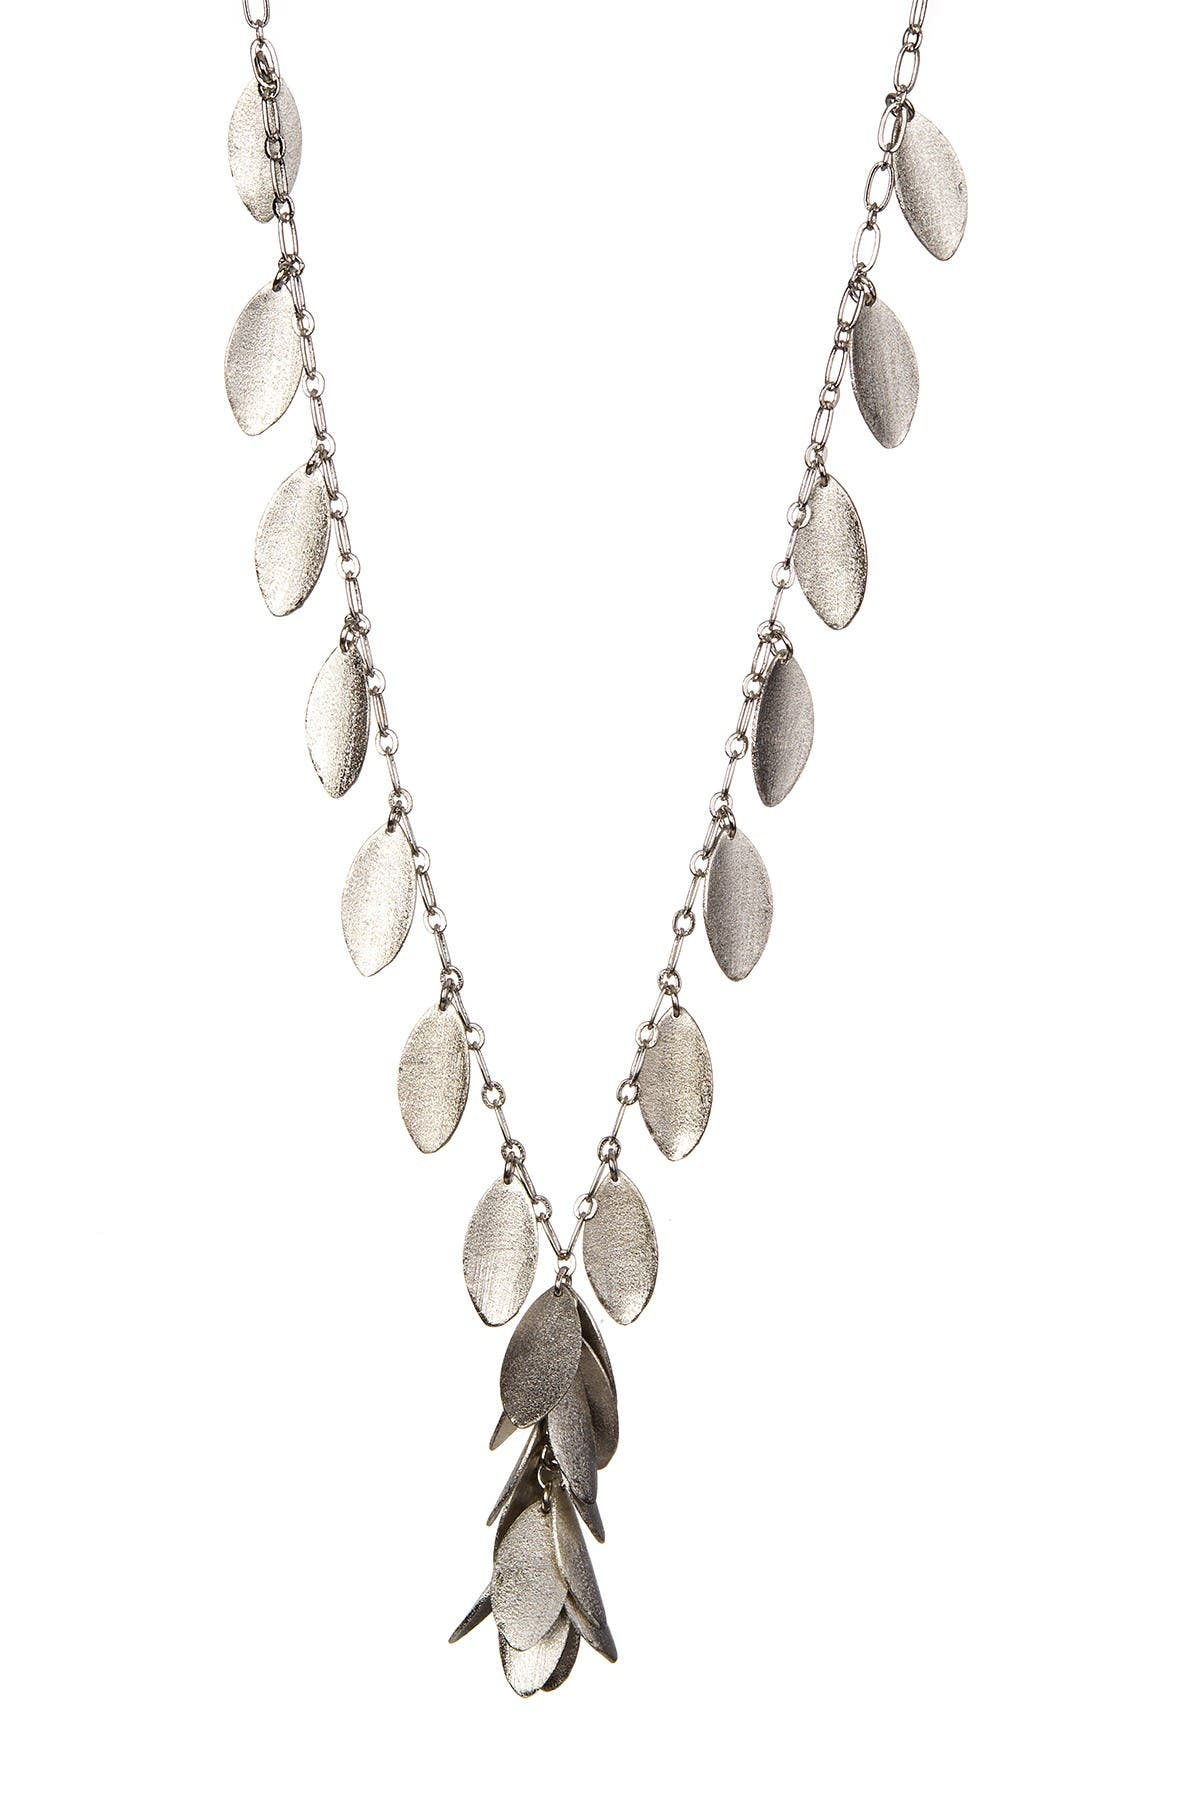 Image of Rivka Friedman Cascading Marquise Dangle Y Satin Necklace